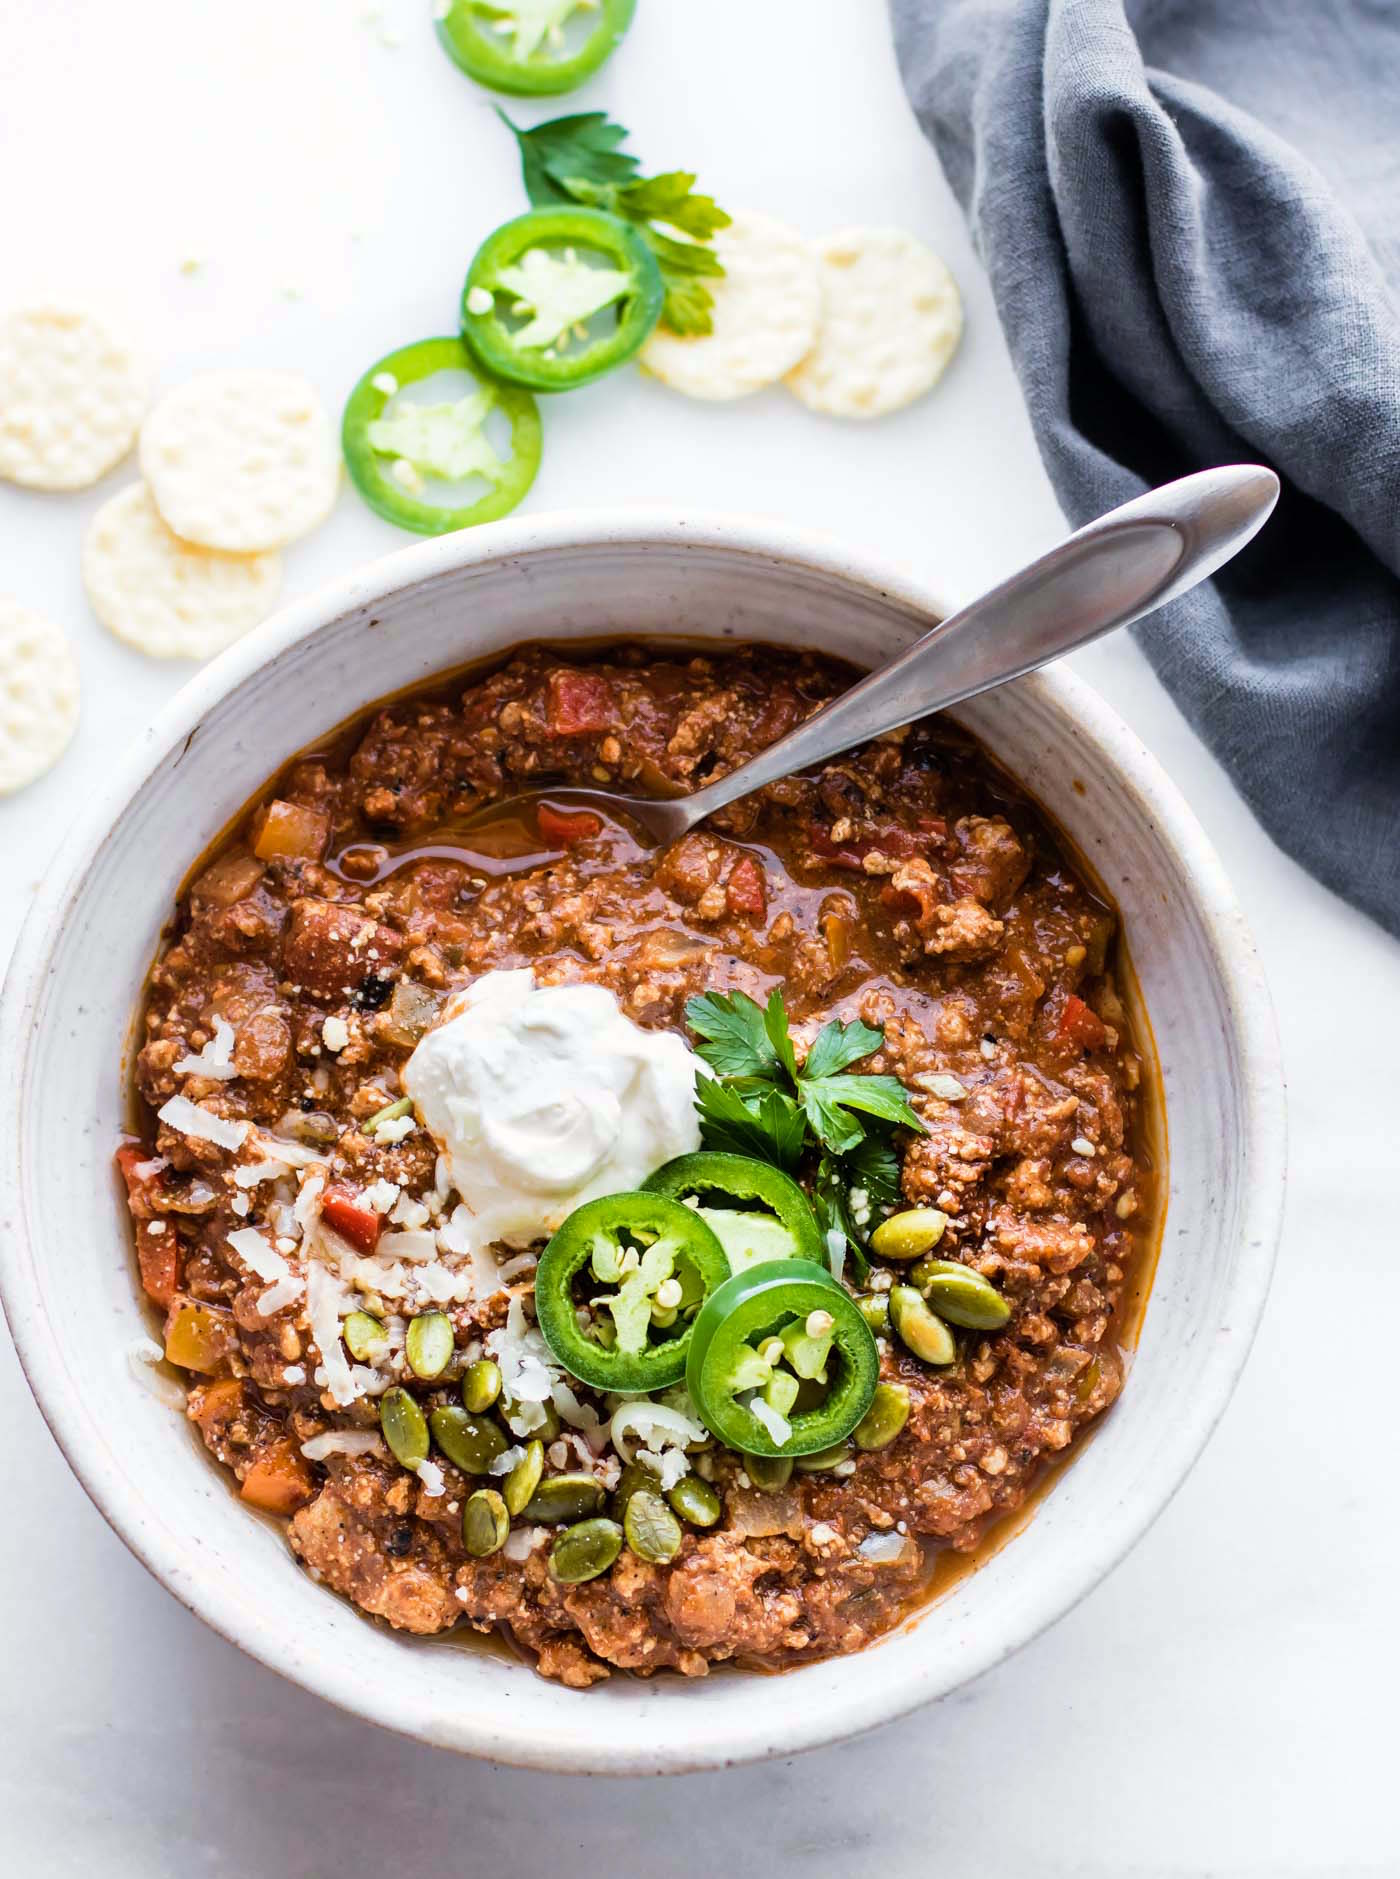 Turkey Chili with a Mexican flare! Quick Sweet Potato Mole Turkey Chili that's Paleo friendly, simple to make, and healthy! A hearty Turkey chili made with an easy homemade sweet potato mole sauce. Great to feed a crowd, for meal prep, or to use up those holiday leftovers.